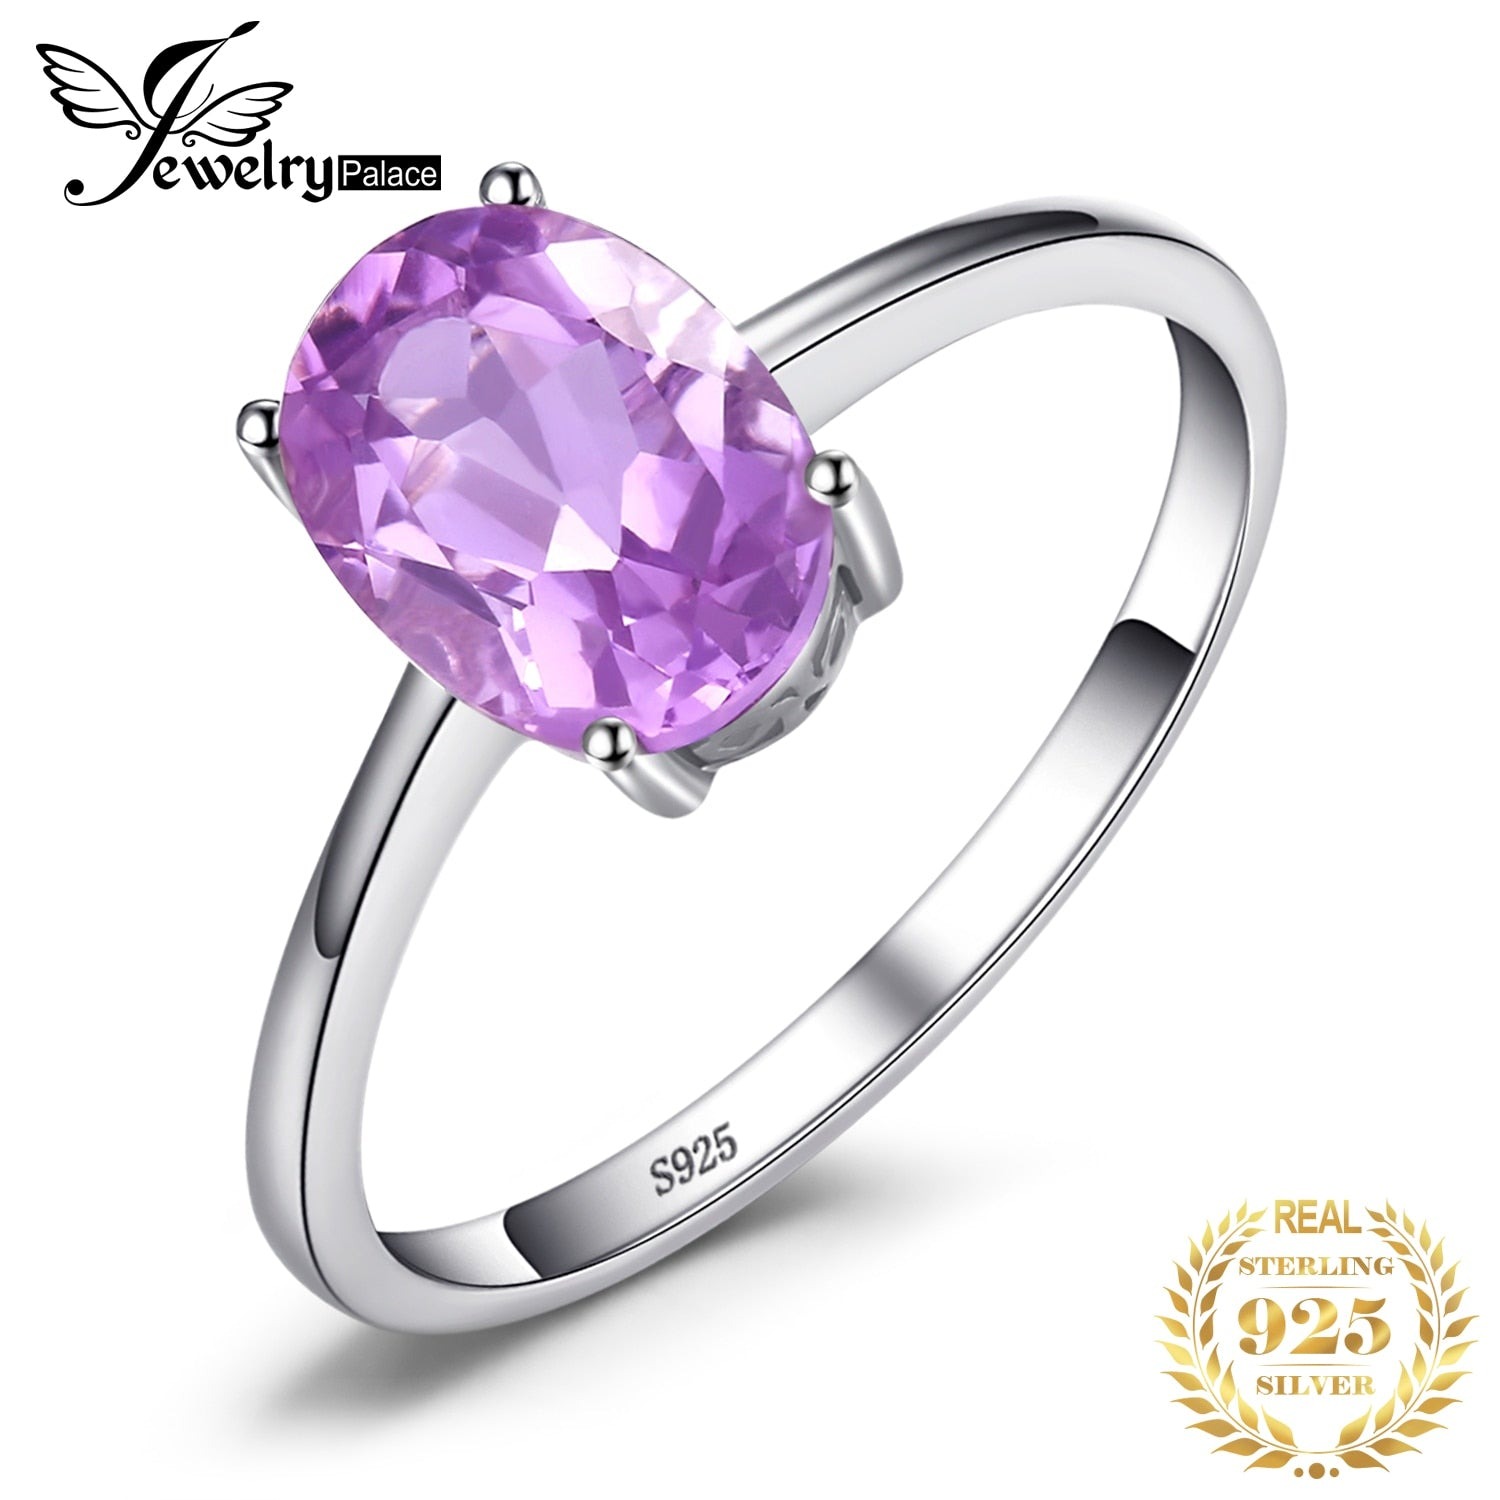 JewelryPalace Genuine Amethyst Ring Solitaire 925 Sterling Silver Rings for Women Engagement Ring Silver 925 Gemstones Jewelry - My Accessory